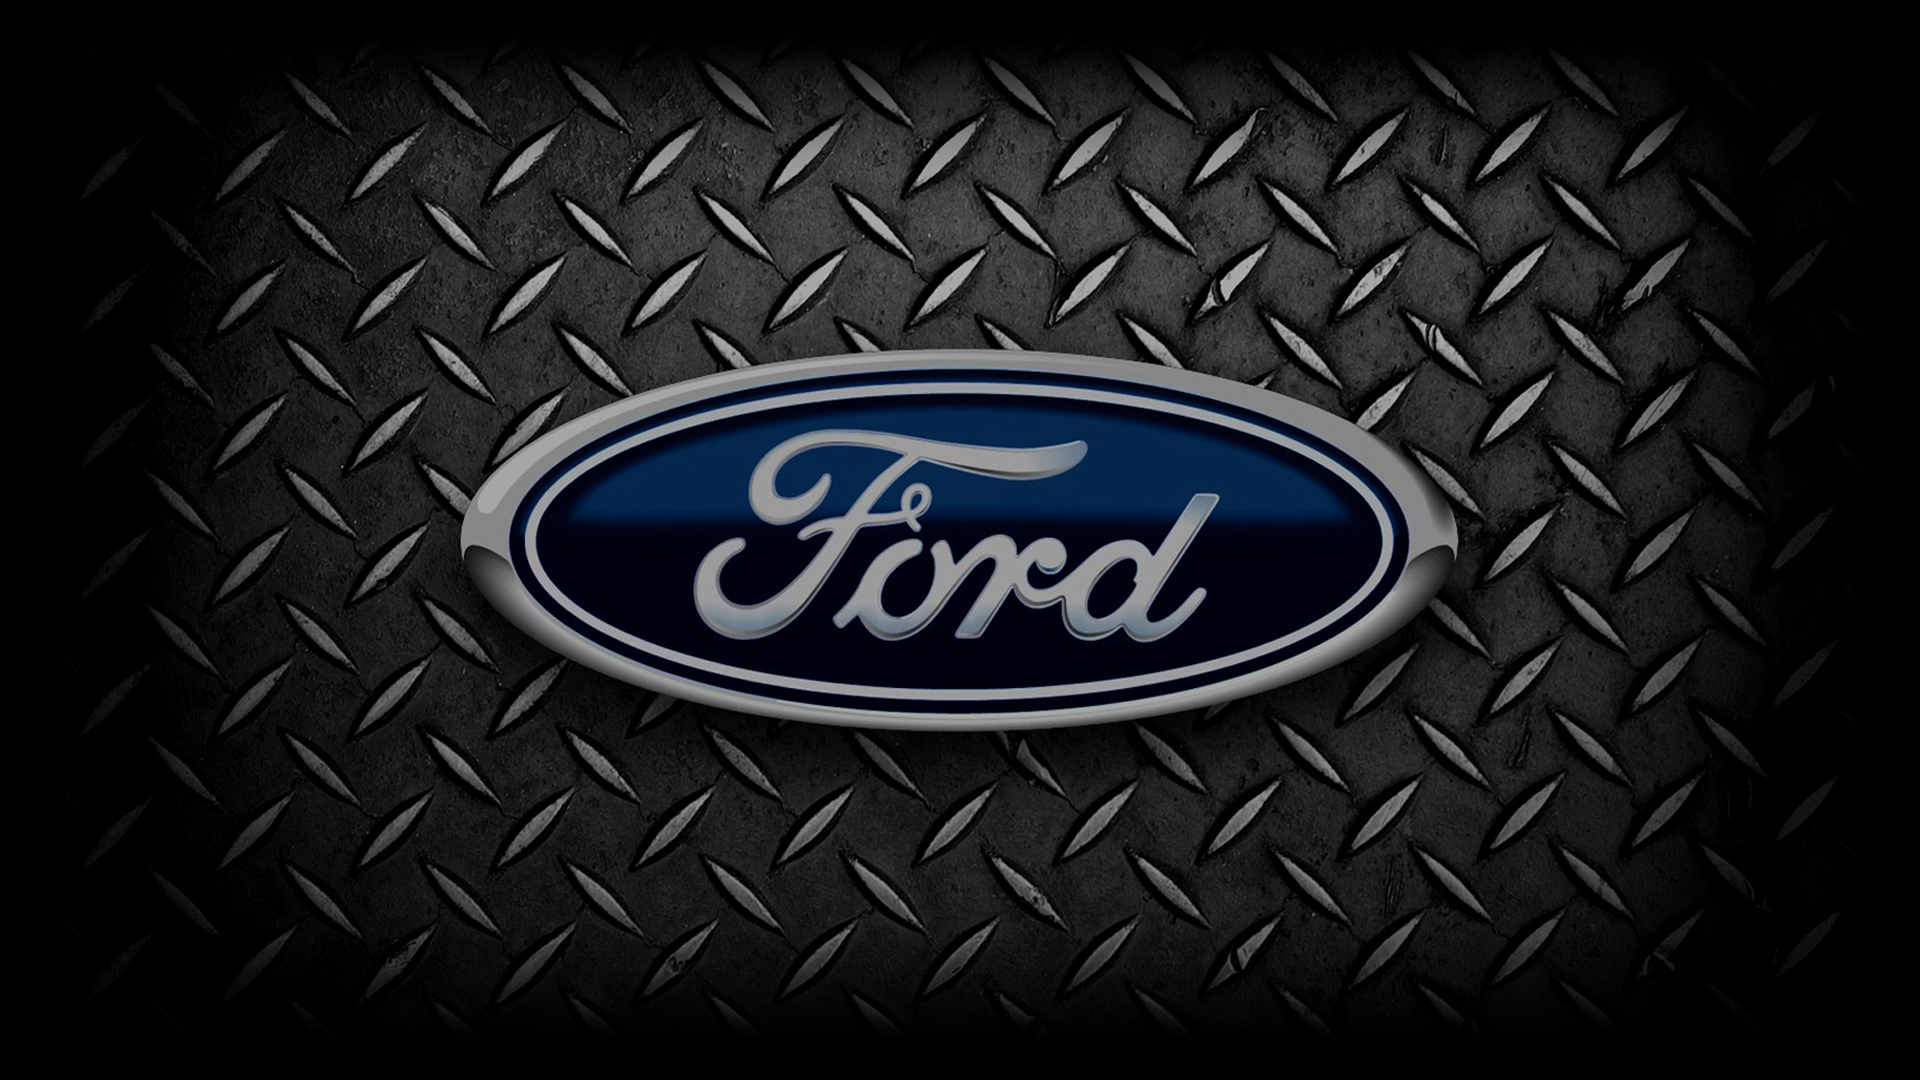 Ford Wallpaper backgrounds In HD for Download 1920x1080